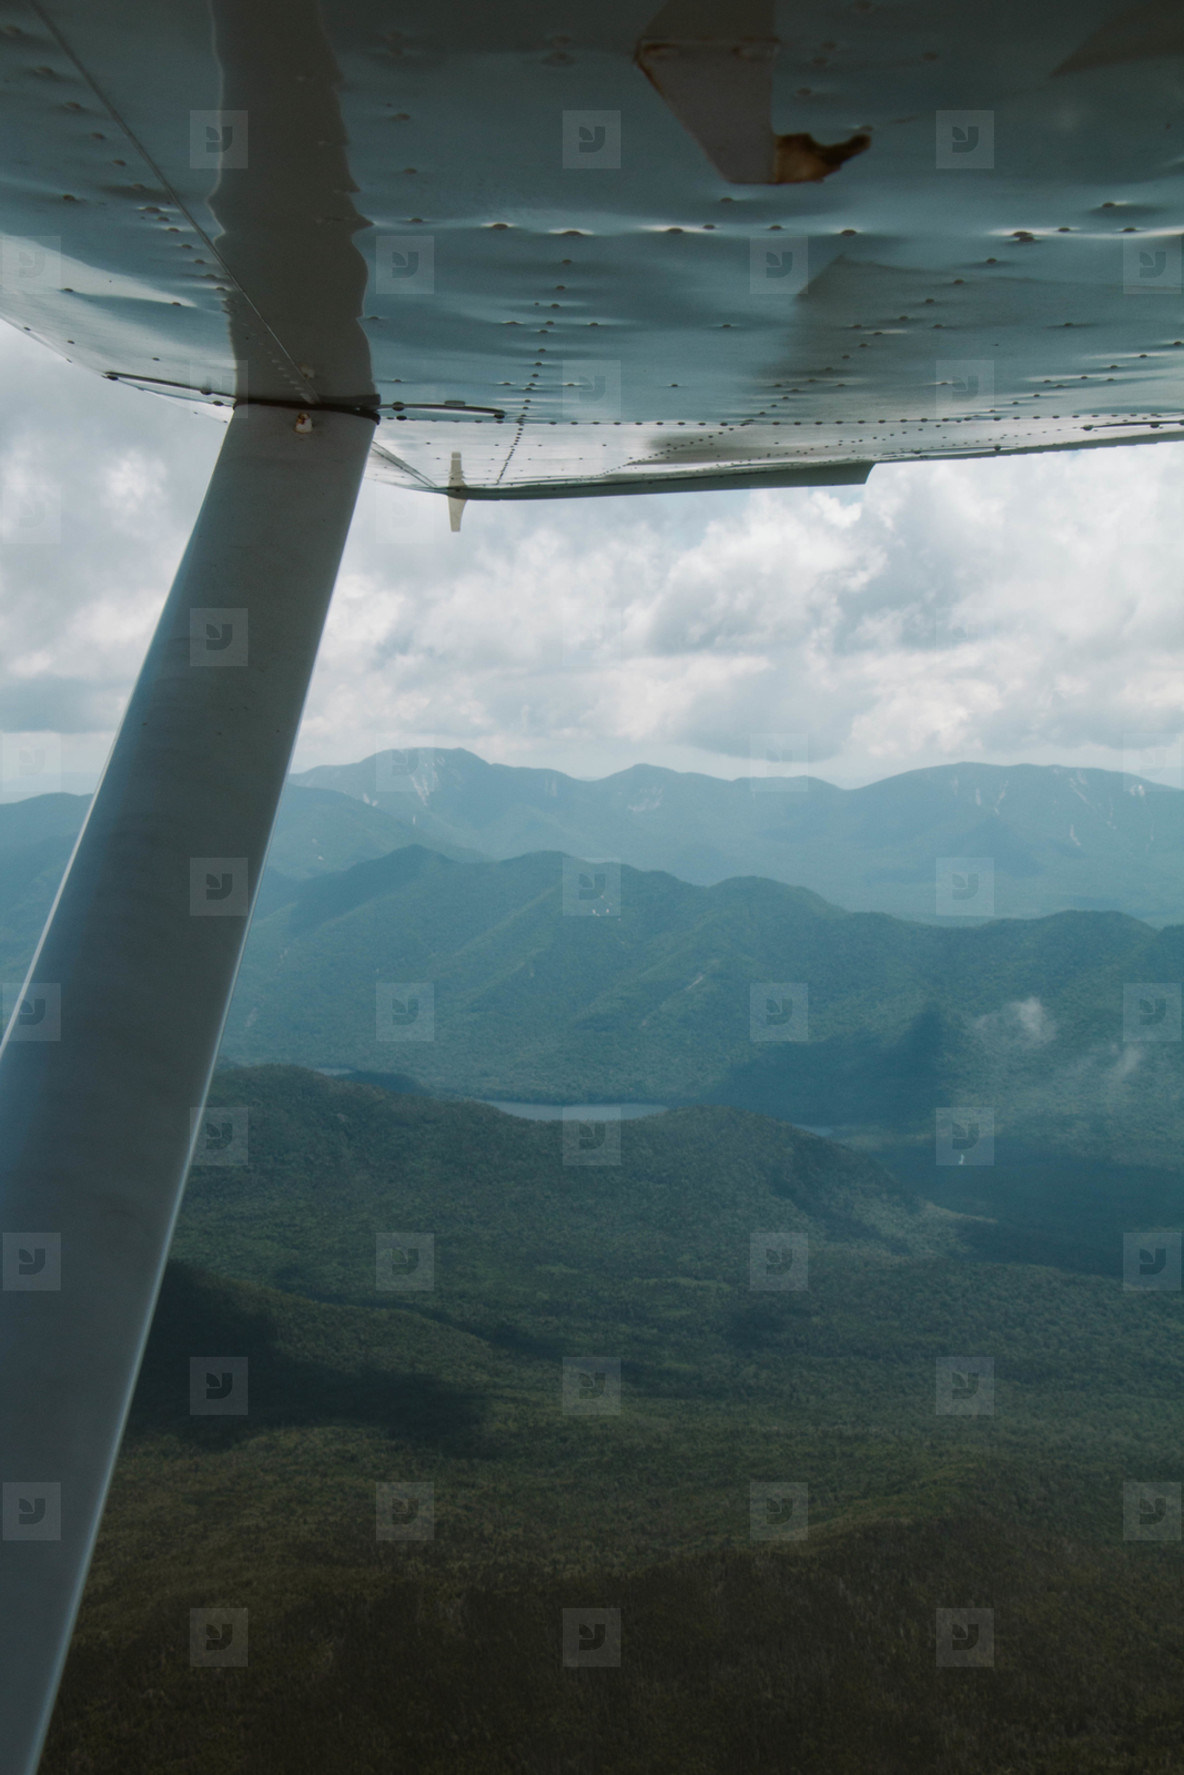 Airplane  clouds  and mountains